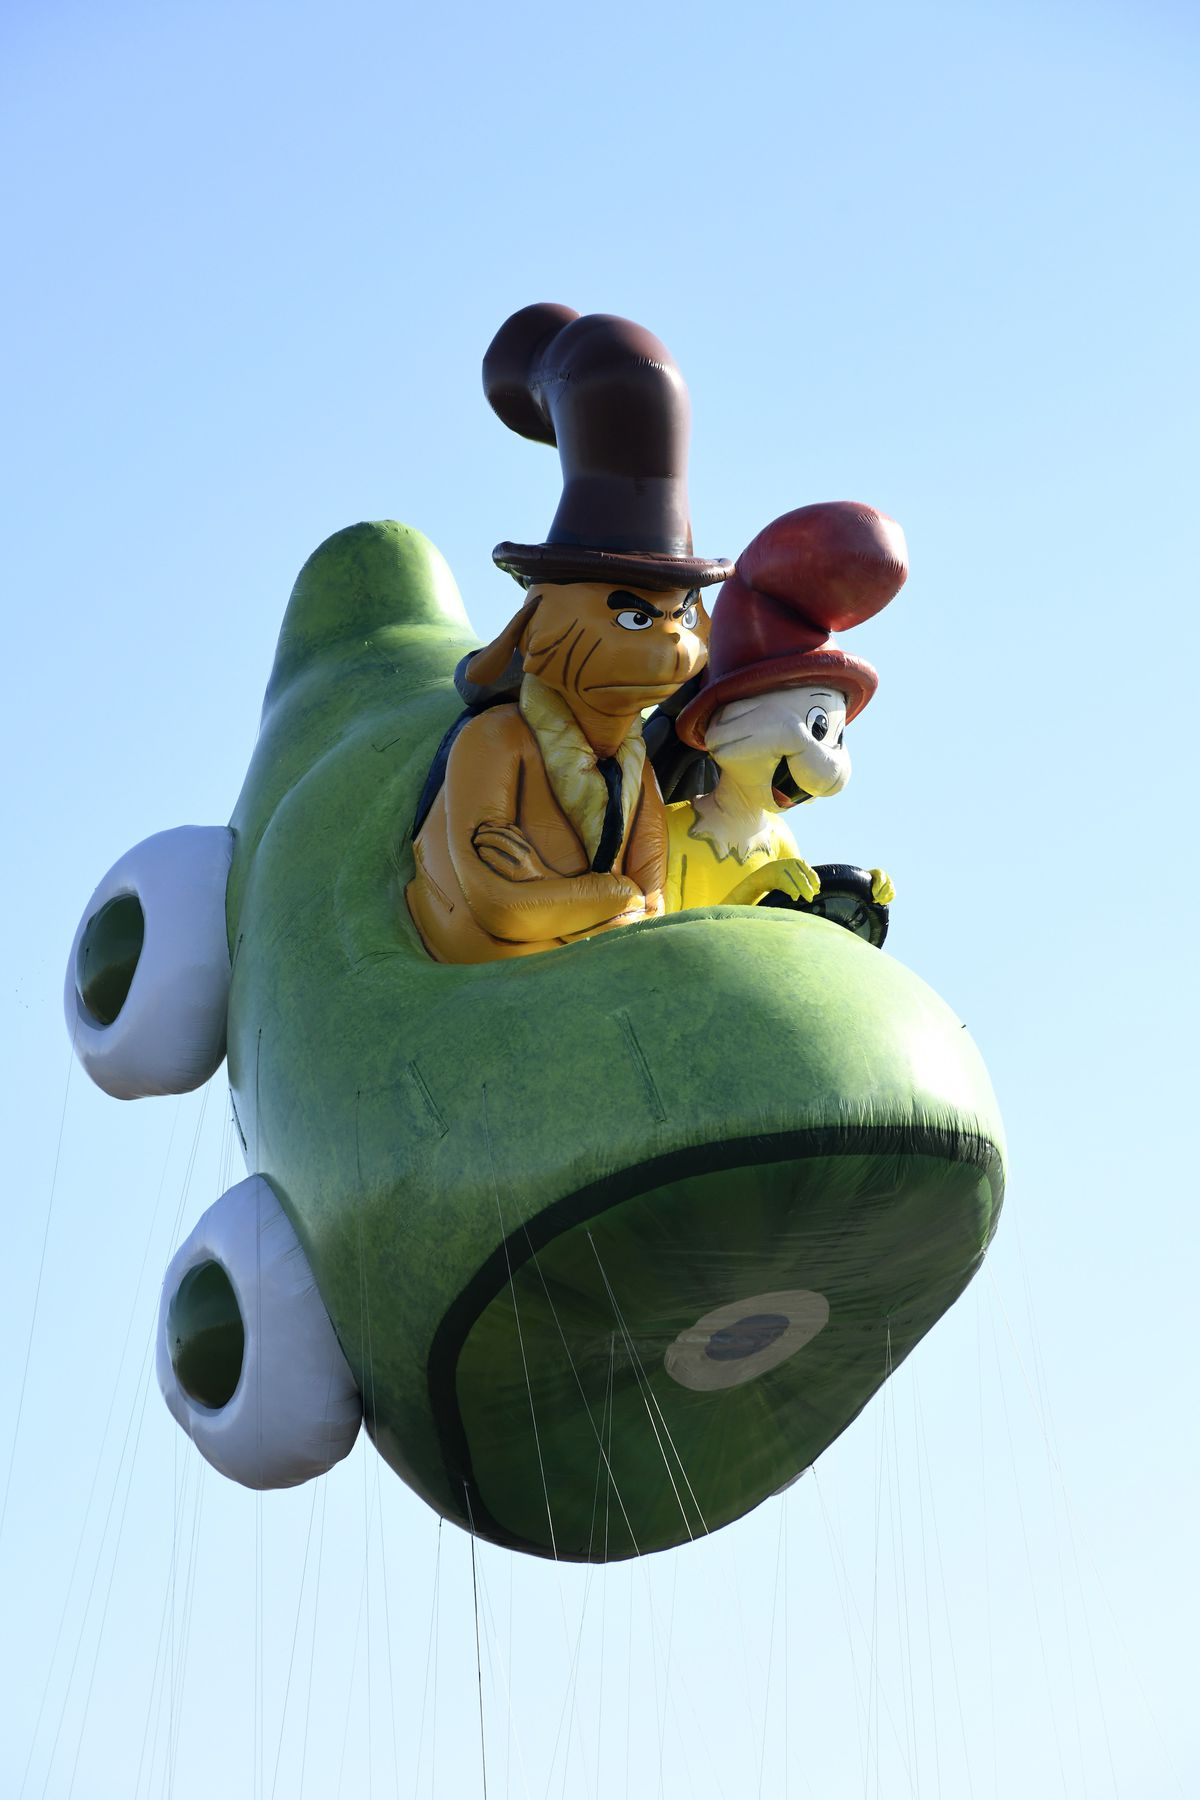 Green Eggs and Ham by Netflix is seen as Macy's unveils new giant character balloons for the 93rd annual Macy's Thanksgiving Day Parade